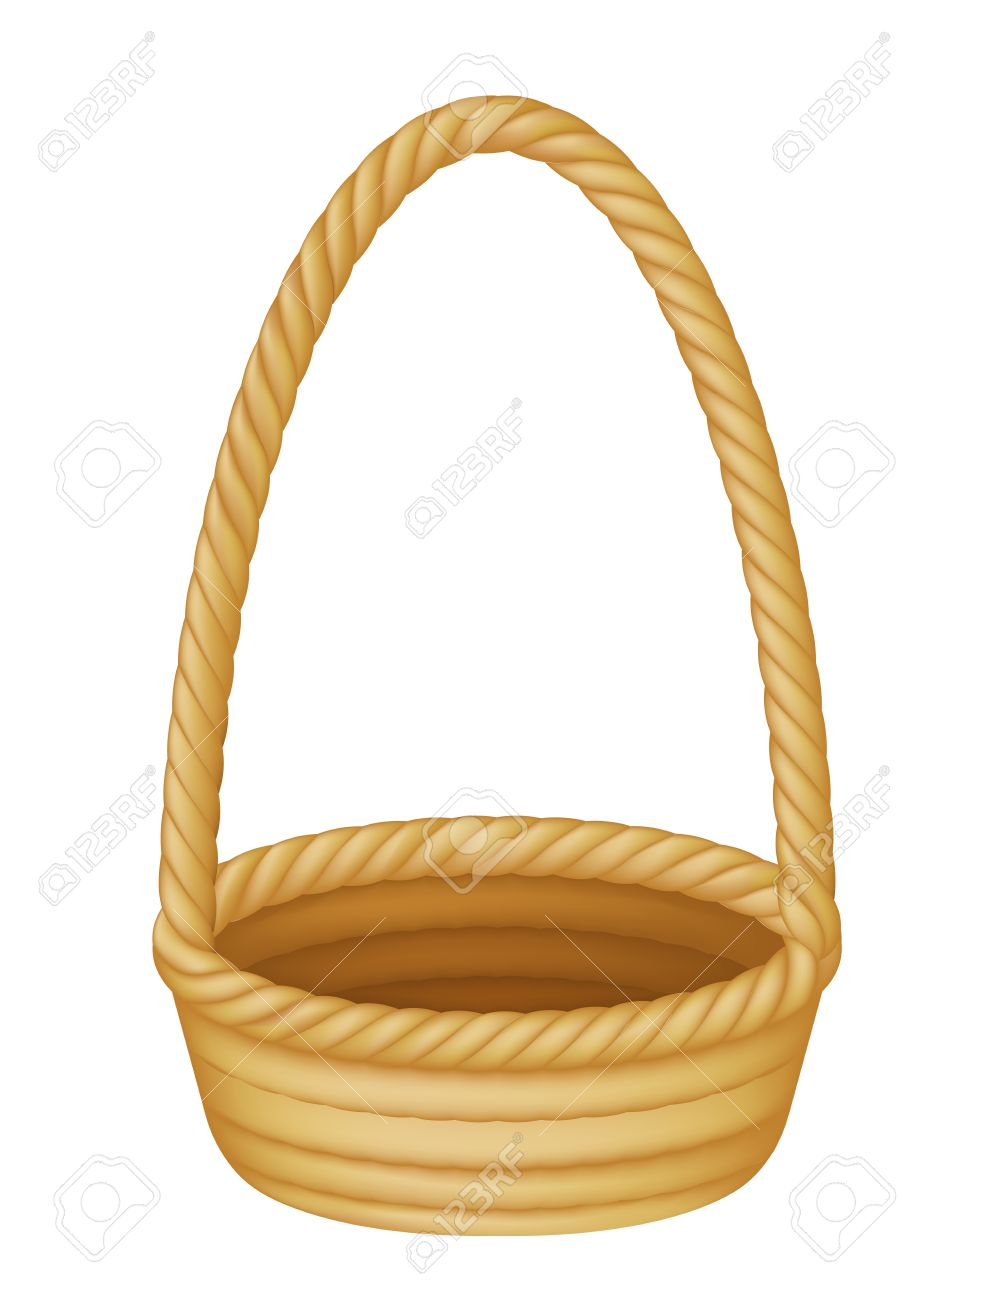 Illustration Of An Empty Wicker Picnic Or Easter Basket Stock Vector